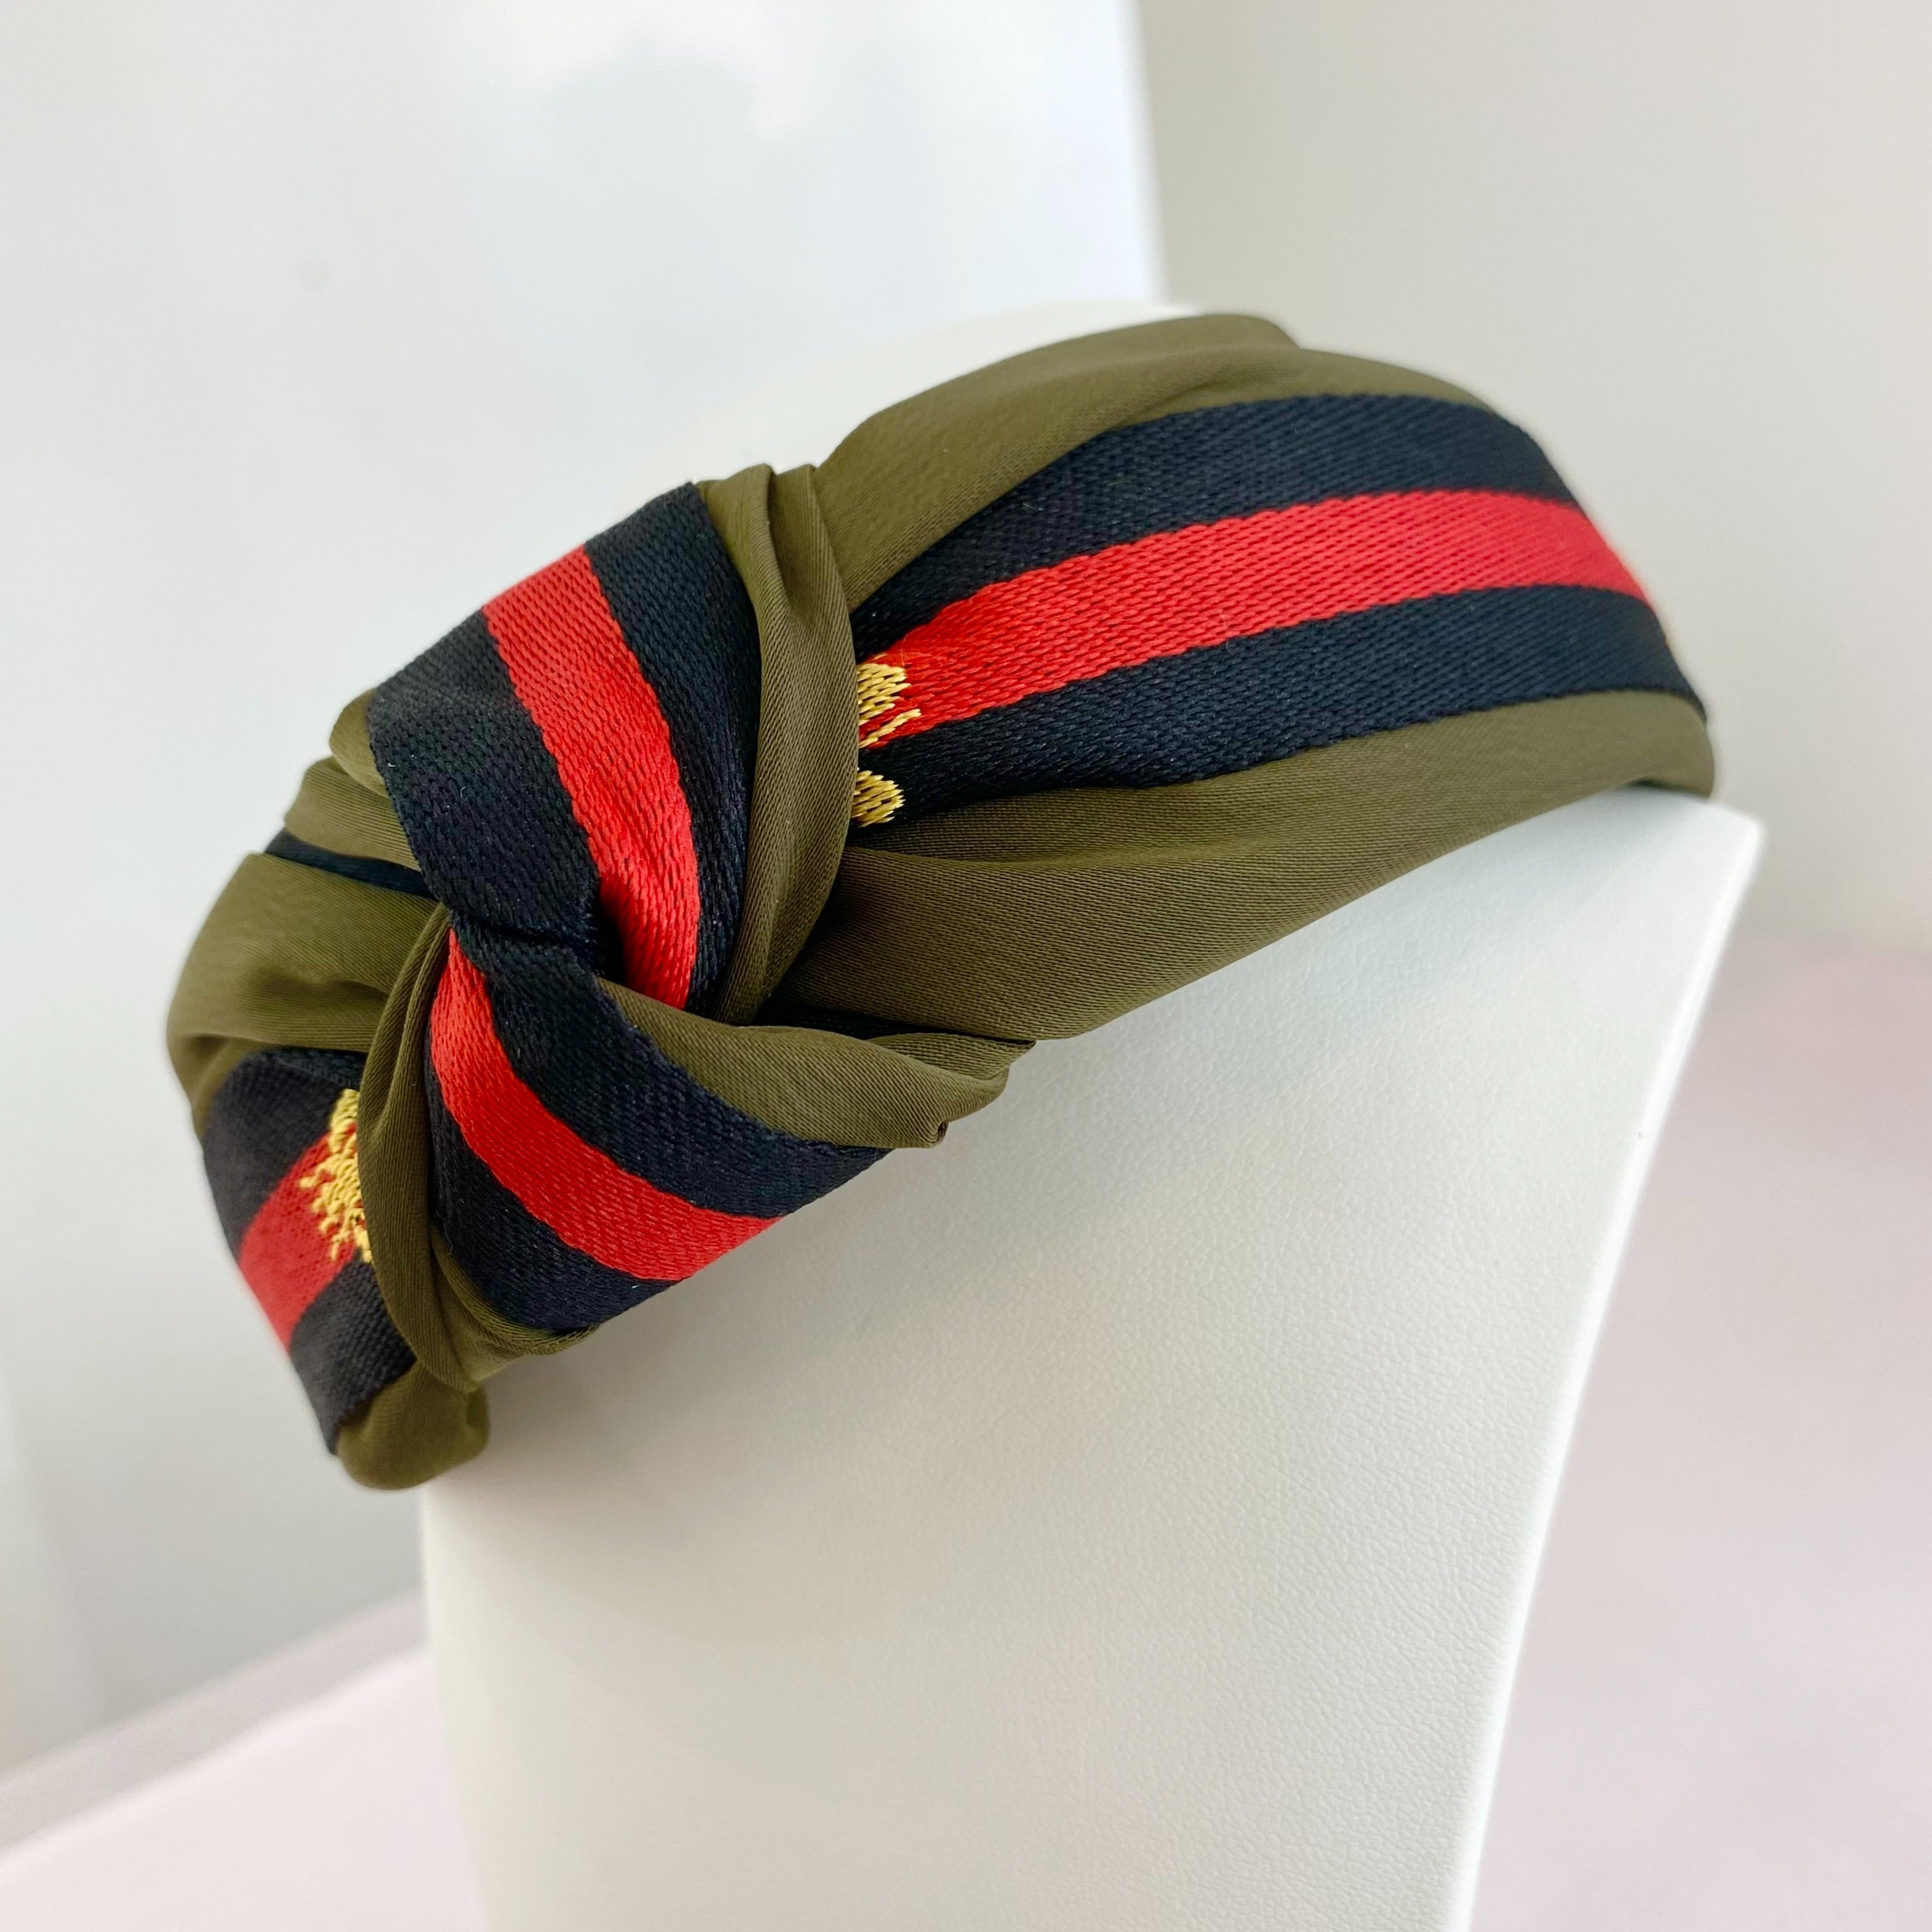 Bumble Khaki Headband